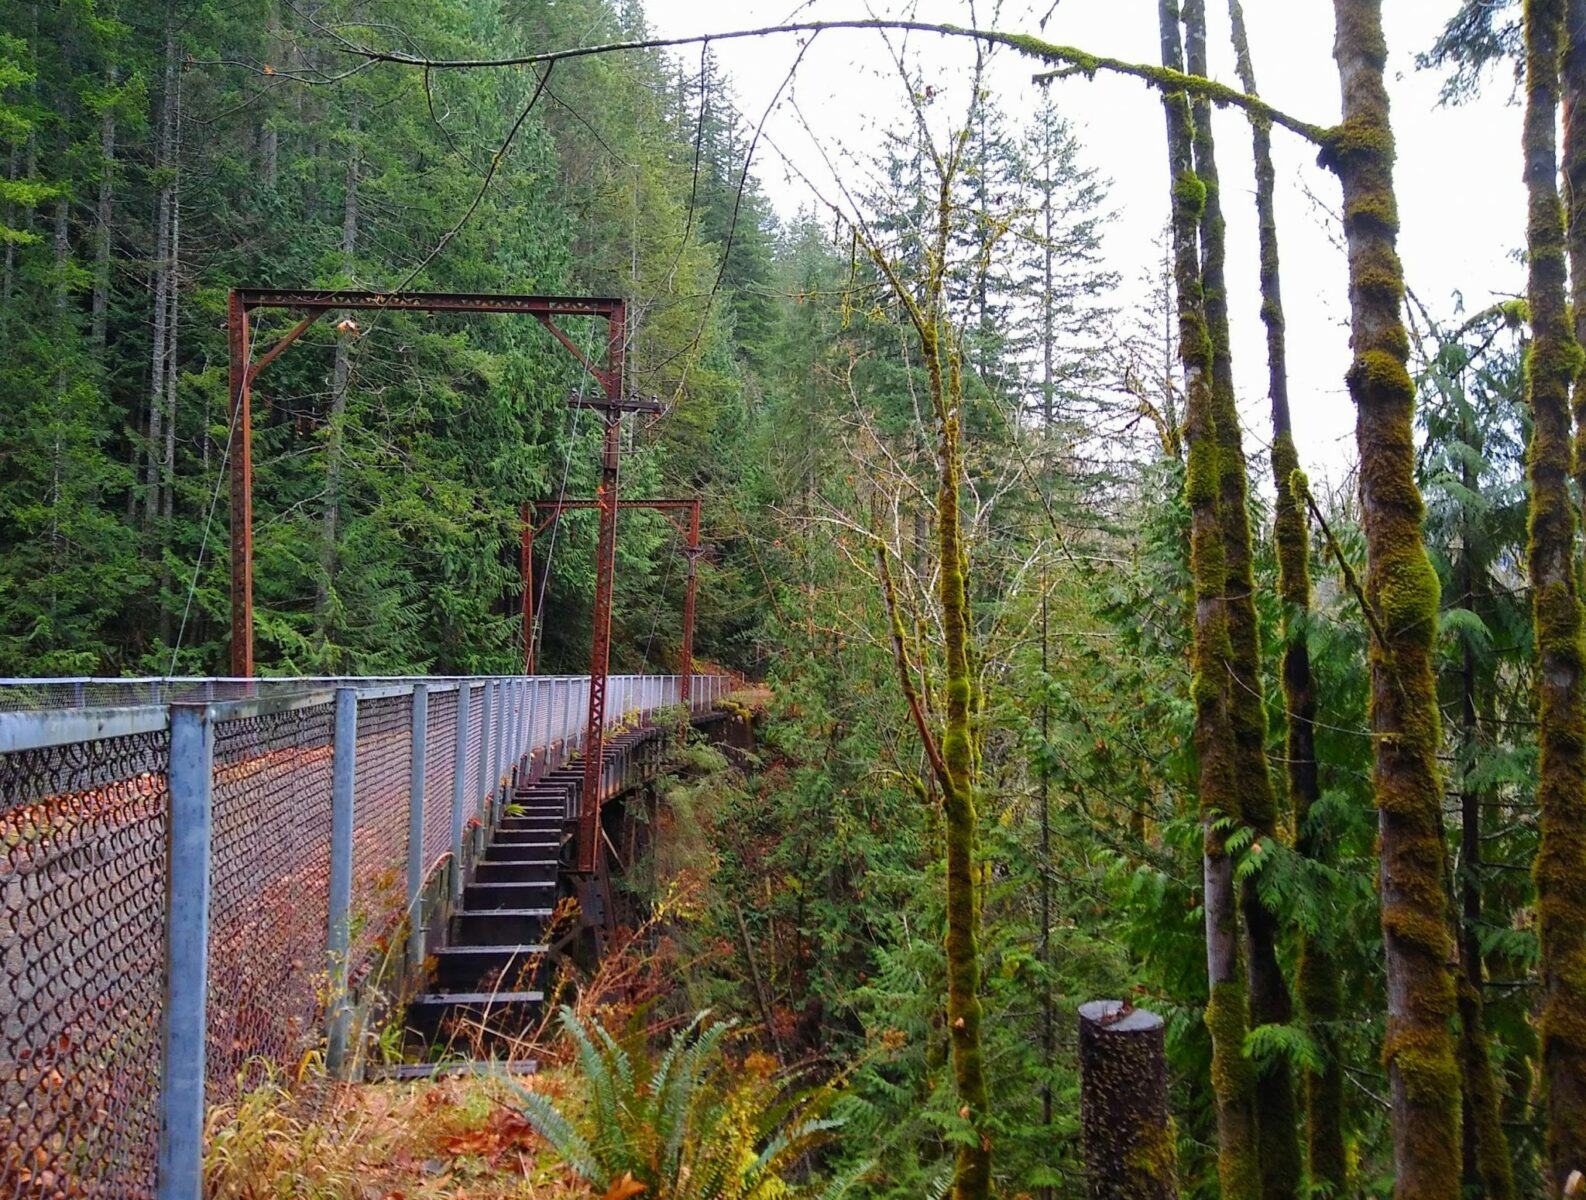 A converted trail bridge to a trail over a steep ravine covered with trees, ferns and moss.